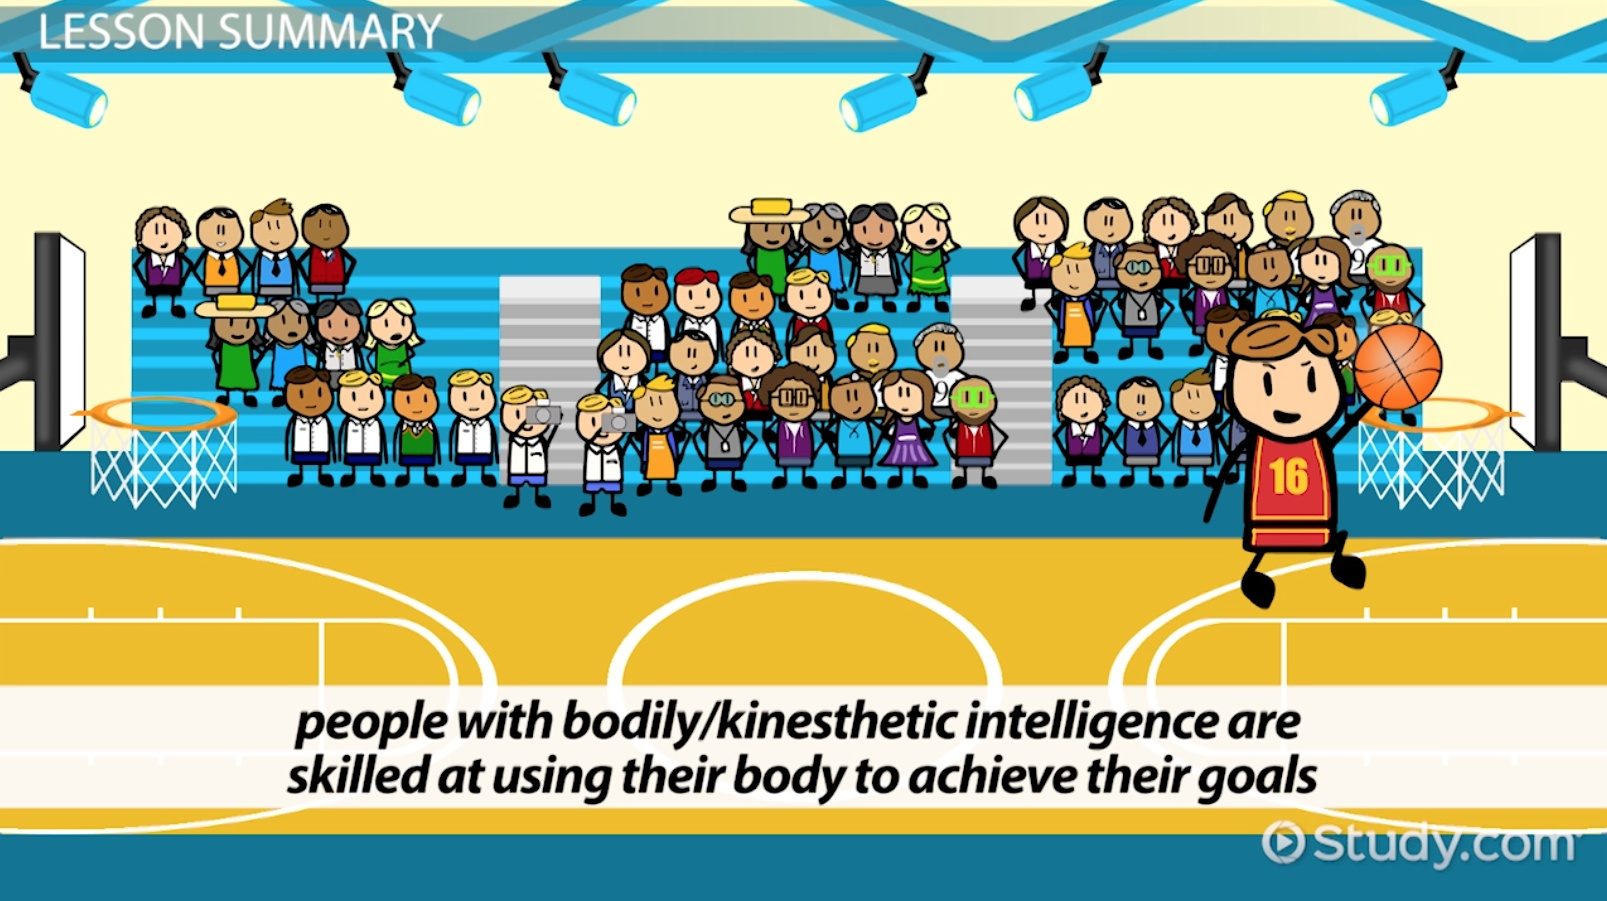 Sweet Kinesthetic Intelligence Definition  Explanation  Video  With Magnificent Kinesthetic Intelligence Definition  Explanation  Video  Lesson  Transcript  Studycom With Charming Gardman Garden Furniture Covers Also Fire  Stone Covent Garden In Addition Gardening Supplies And Ness Gardens Wedding As Well As Garden Lawn Edging Ideas Additionally Covent Garden Things To Do From Studycom With   Magnificent Kinesthetic Intelligence Definition  Explanation  Video  With Charming Kinesthetic Intelligence Definition  Explanation  Video  Lesson  Transcript  Studycom And Sweet Gardman Garden Furniture Covers Also Fire  Stone Covent Garden In Addition Gardening Supplies From Studycom